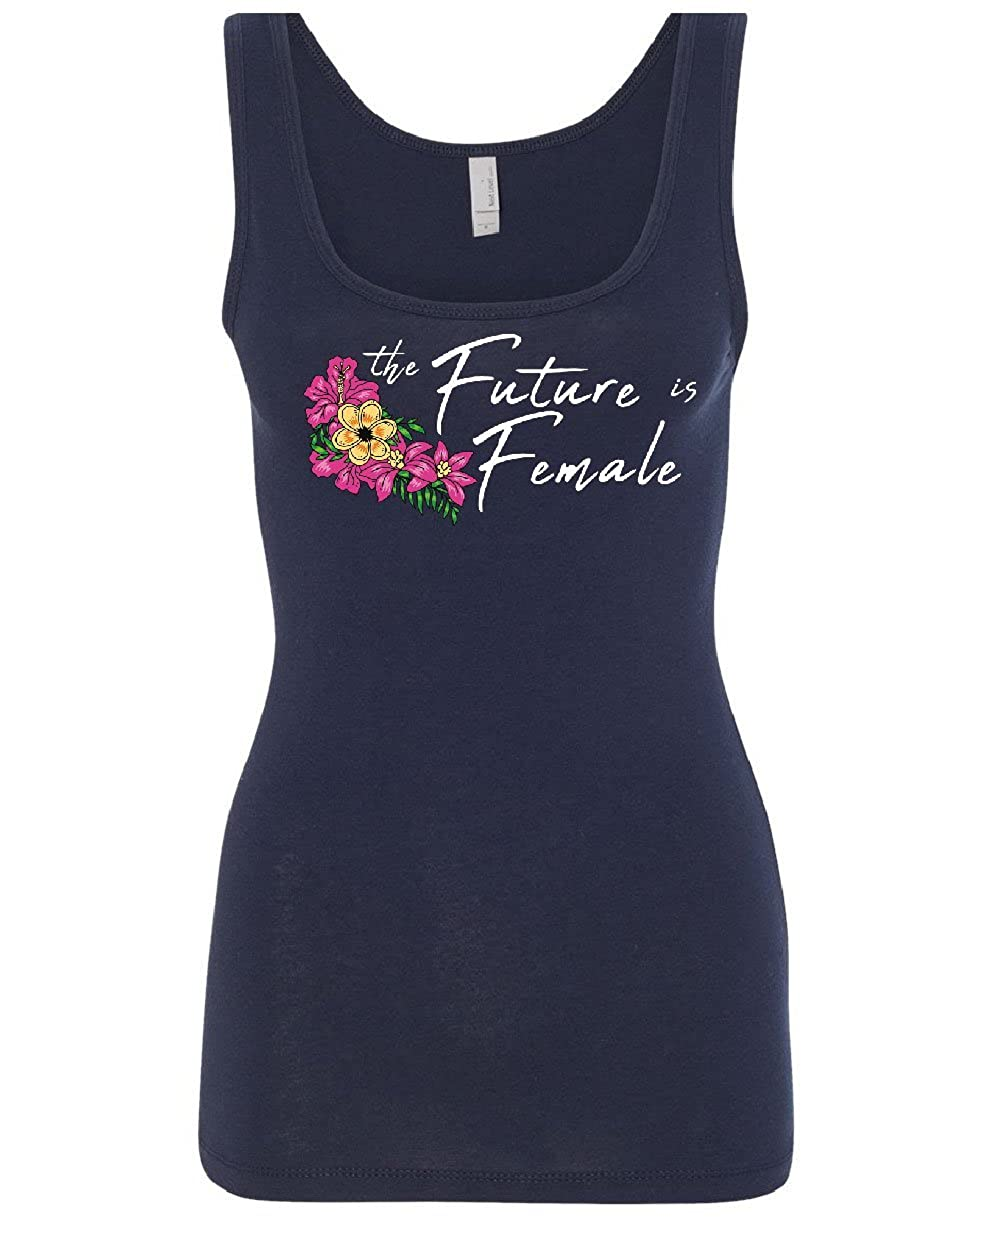 The Future Is Female Tank Top Feminism Rights Girl Power Top Shirts